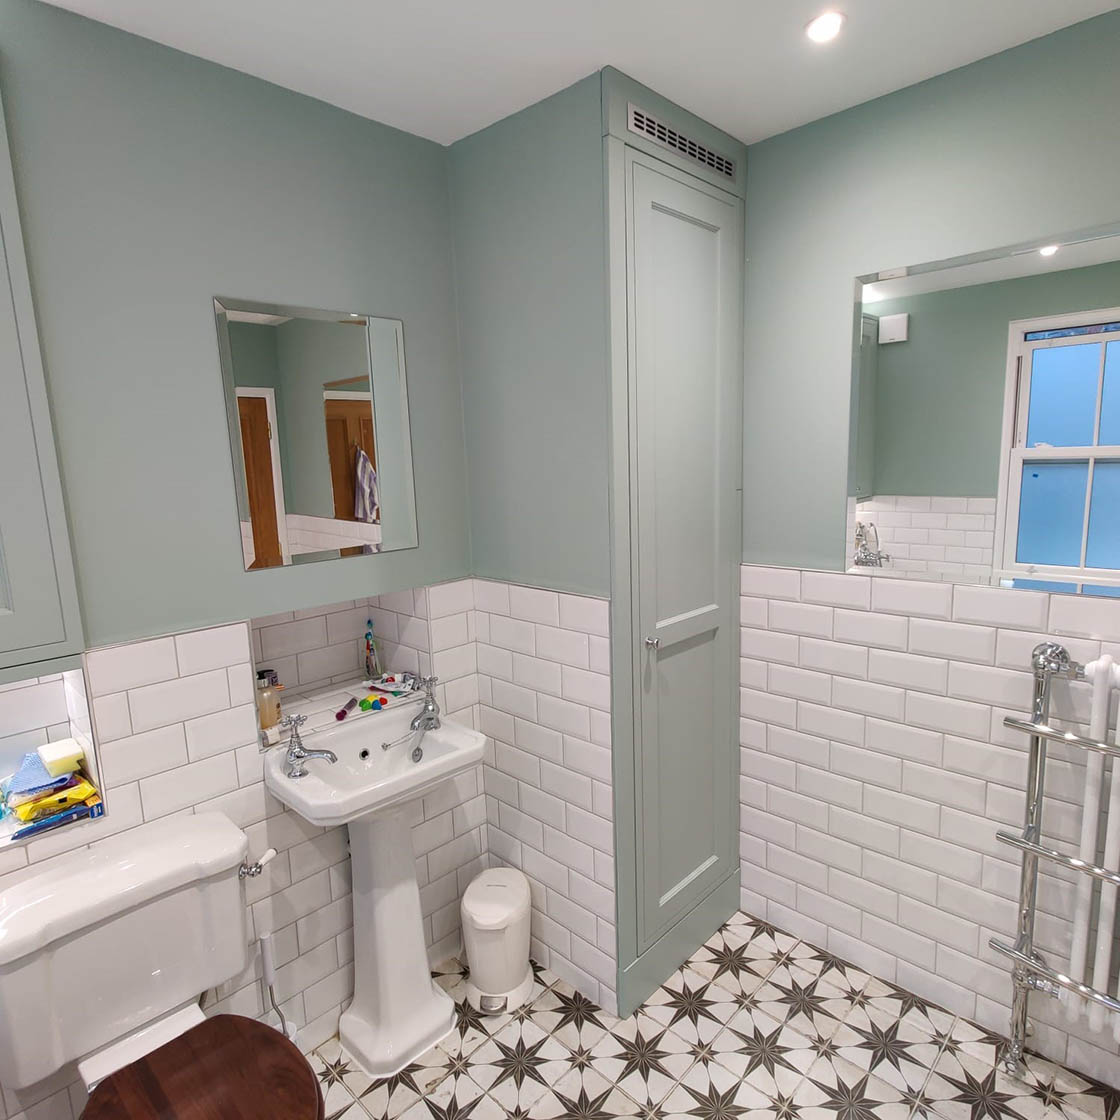 Victorian Style Bathroom Renovation in Redhill Surrey - Revisit Picture 2